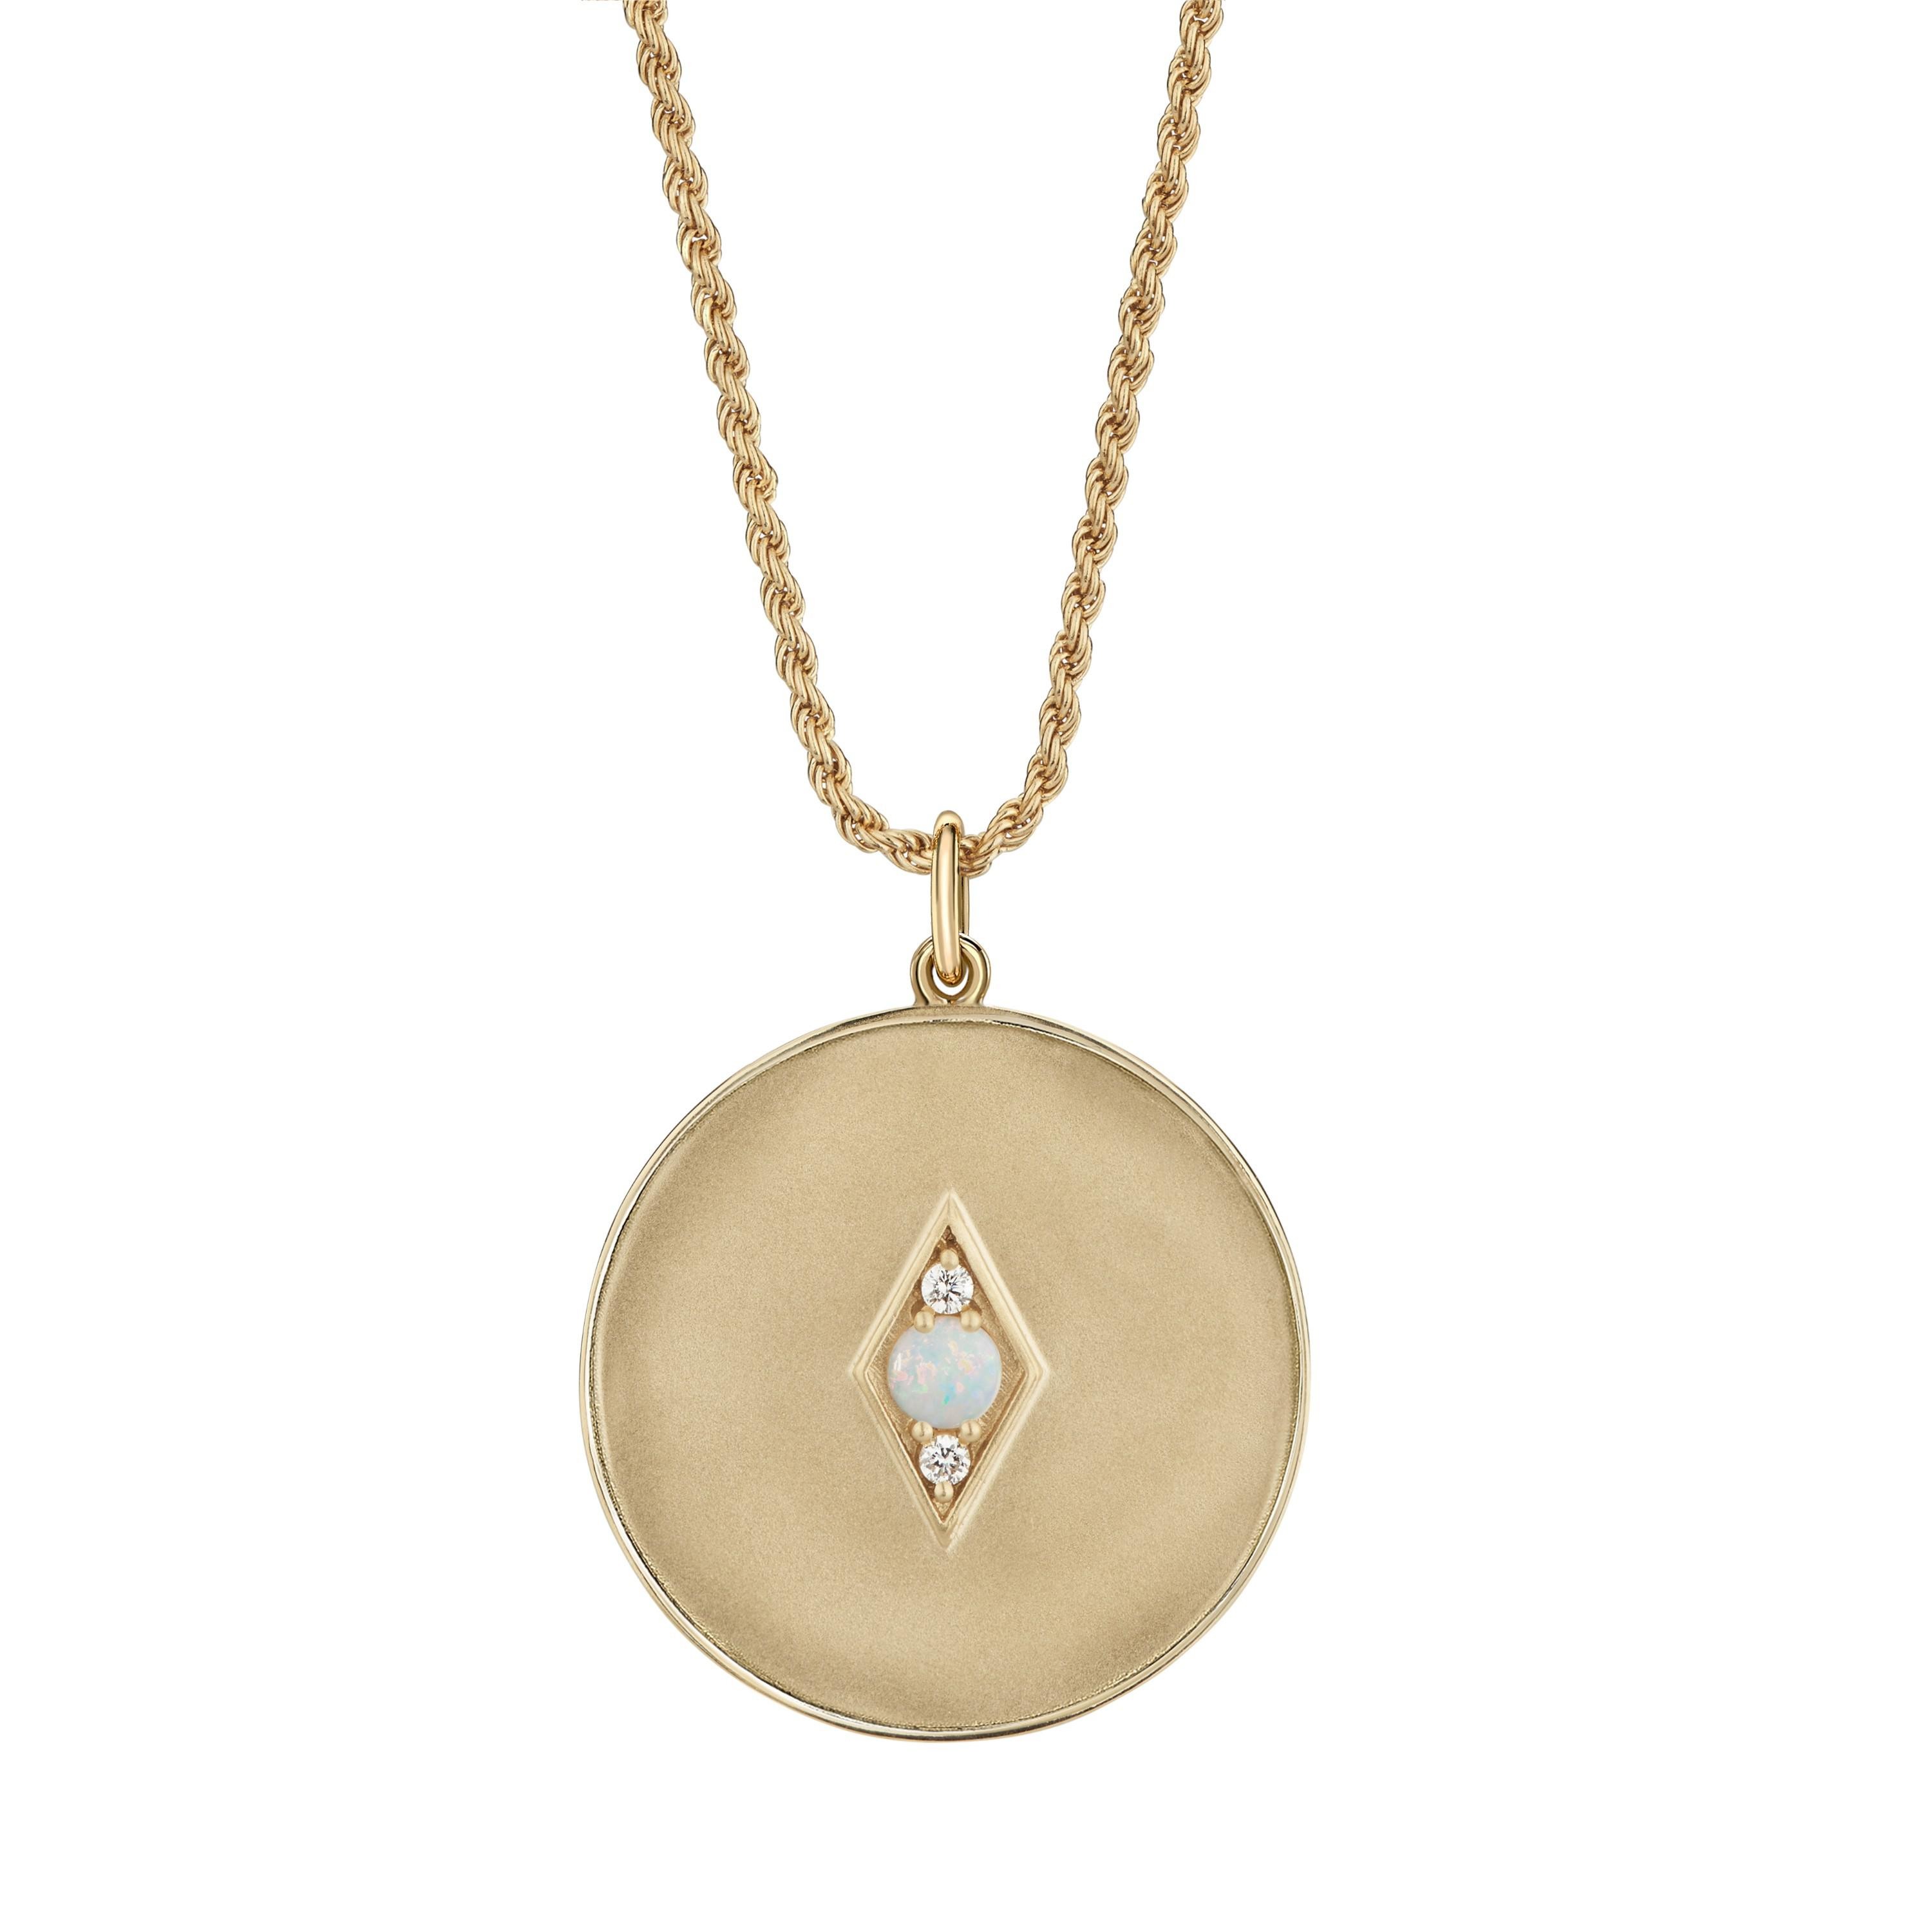 ssn emerson victoria necklace g pendant products libra